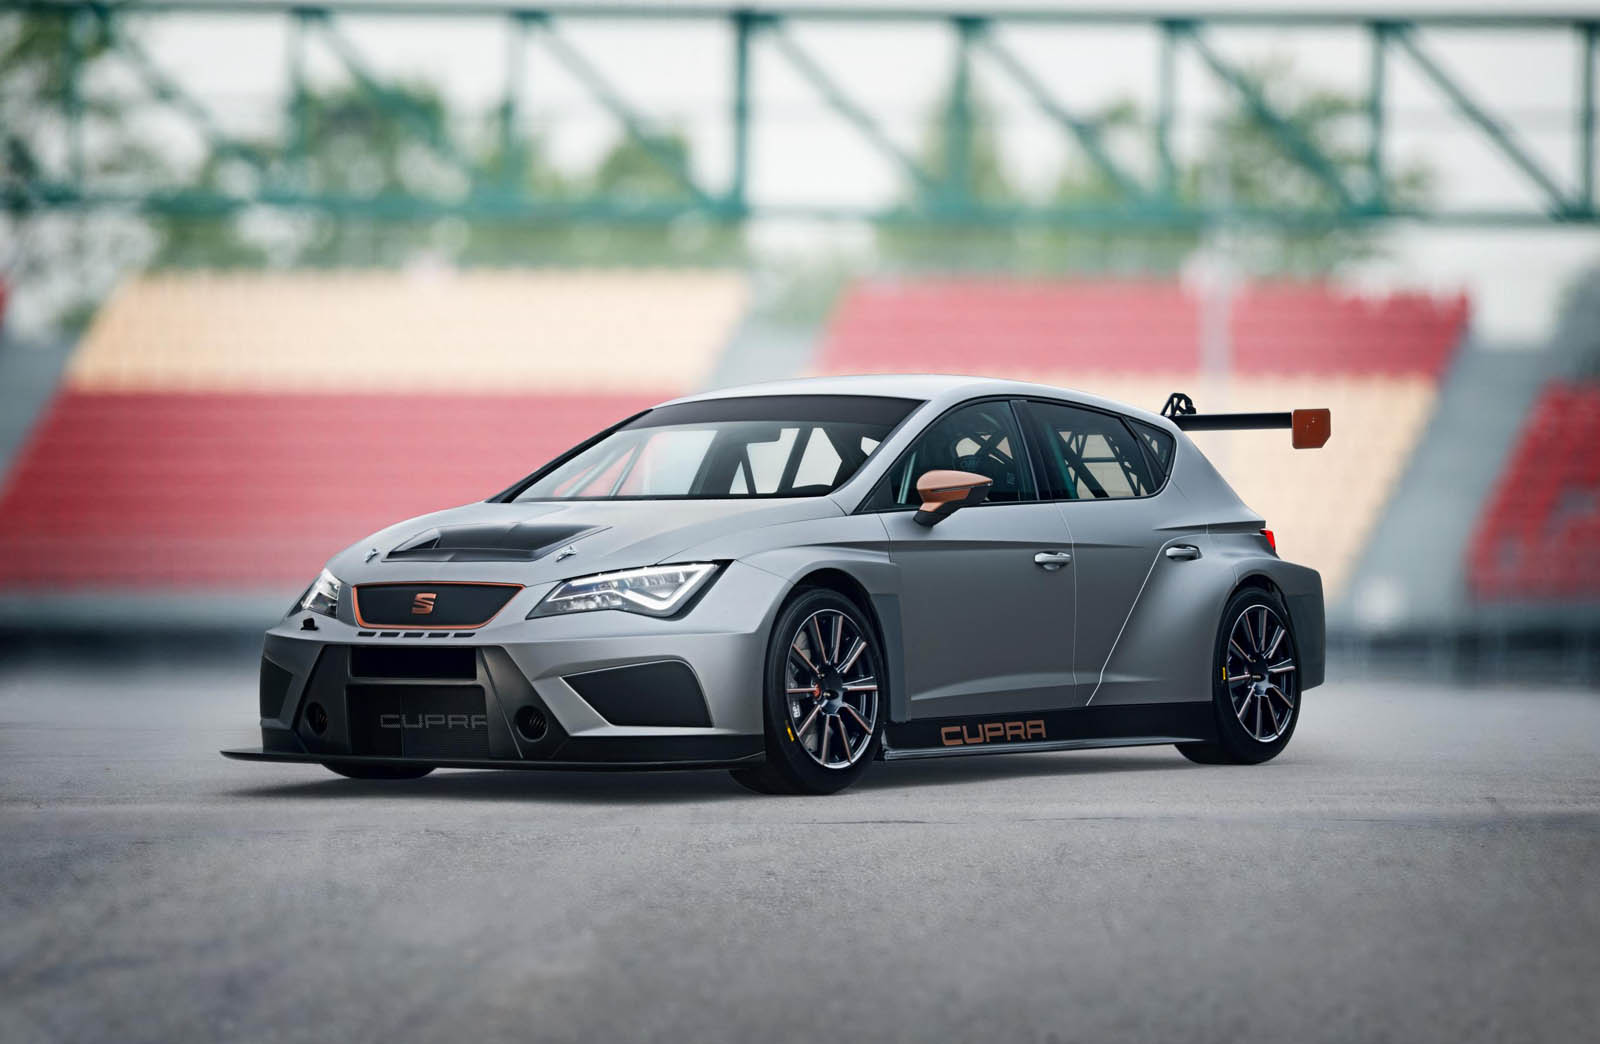 seat 39 s bringing this sick new leon cupra evo 17 racer to geneva. Black Bedroom Furniture Sets. Home Design Ideas